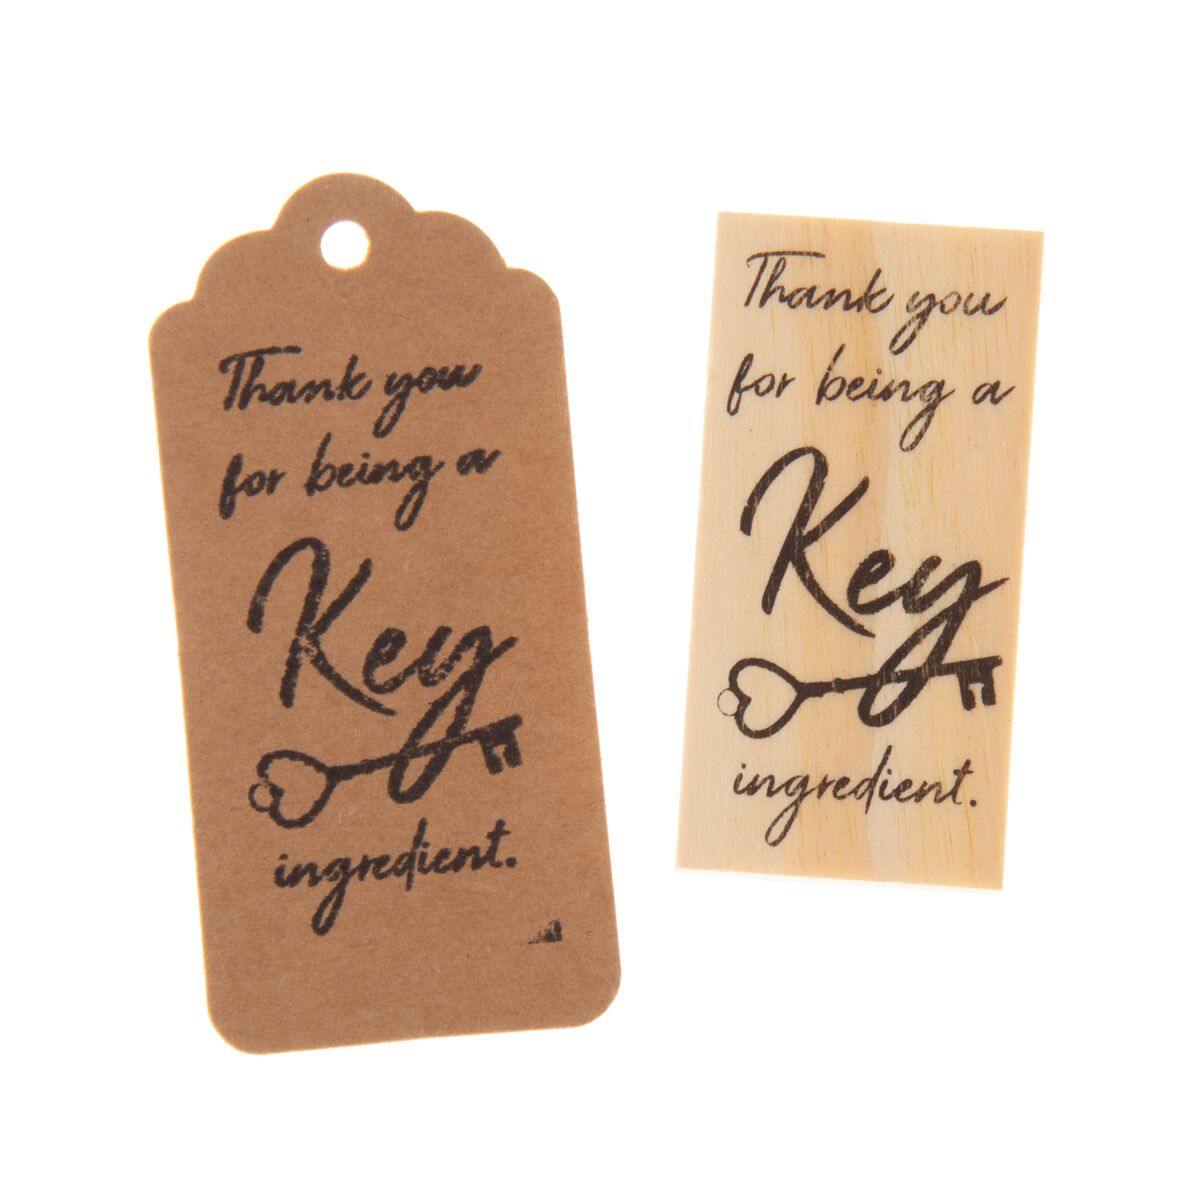 Wooden Rubber Stamp - Key Ingredient